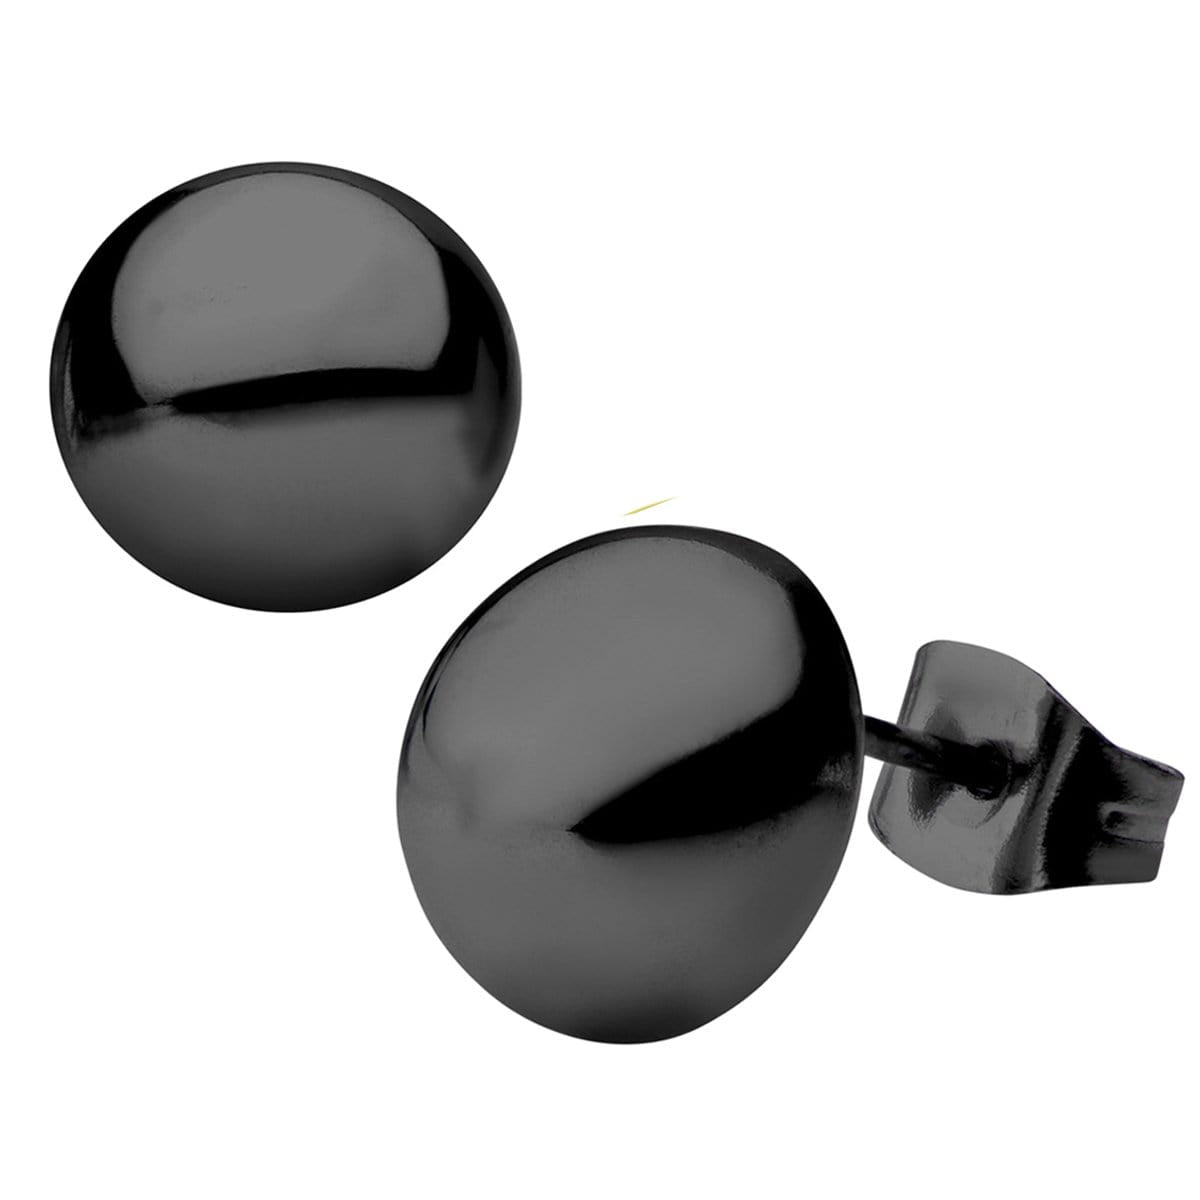 Black Stainless Steel Small Round Dome Studs Earrings